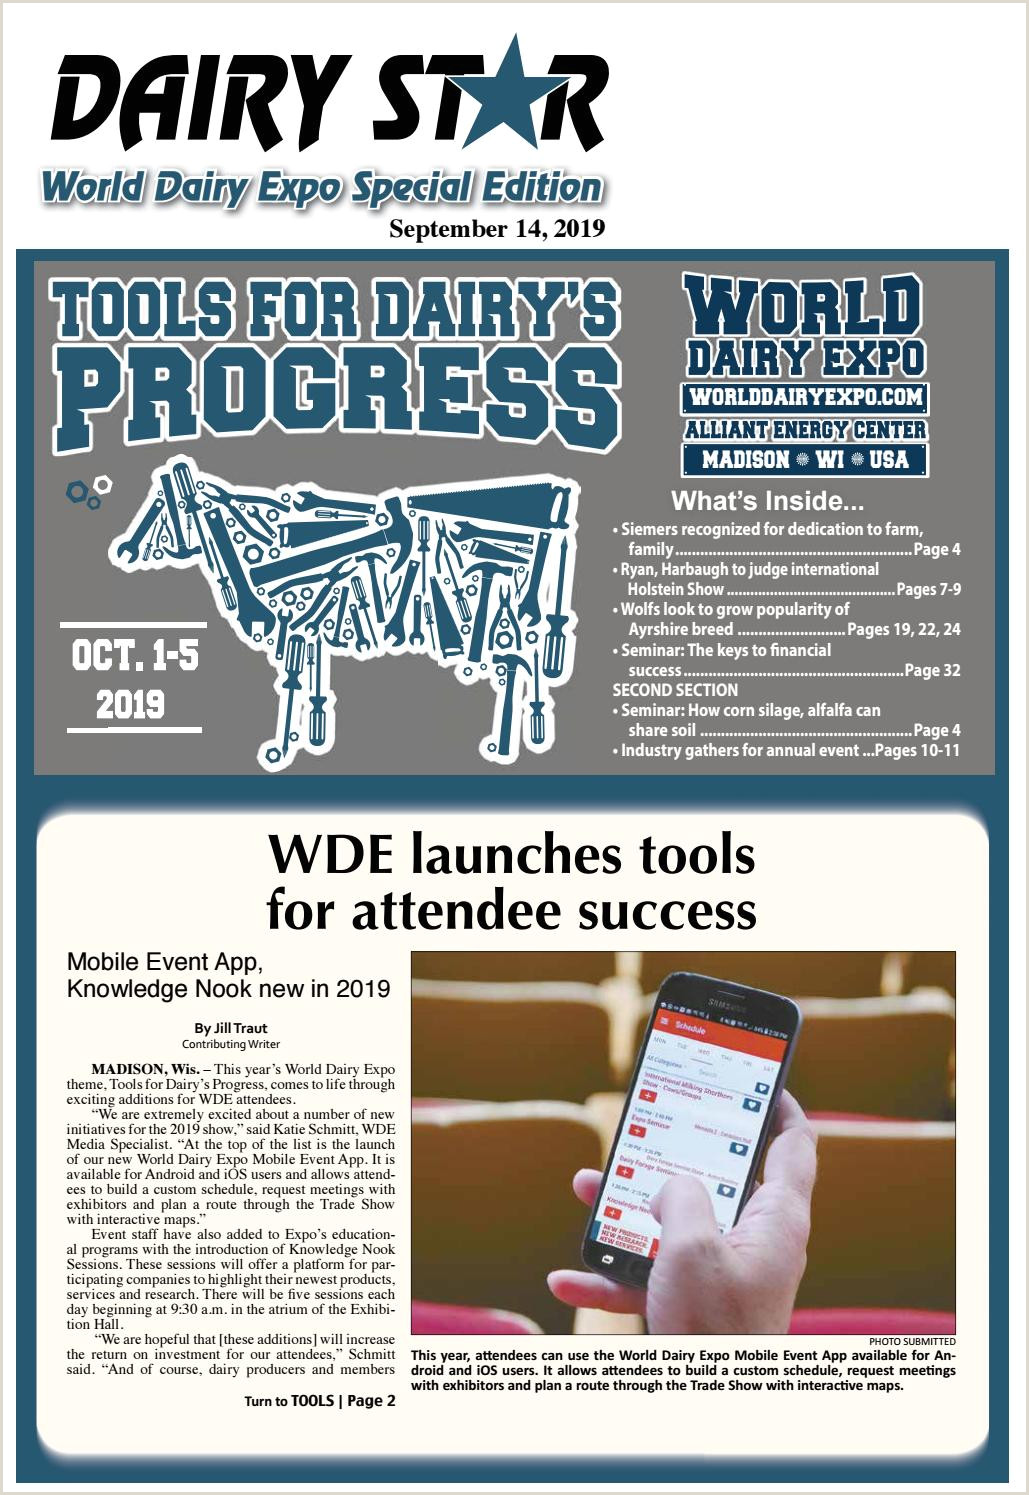 Expox Banner Stand 2019 World Dairy Expo Tab By Dairy Star Issuu